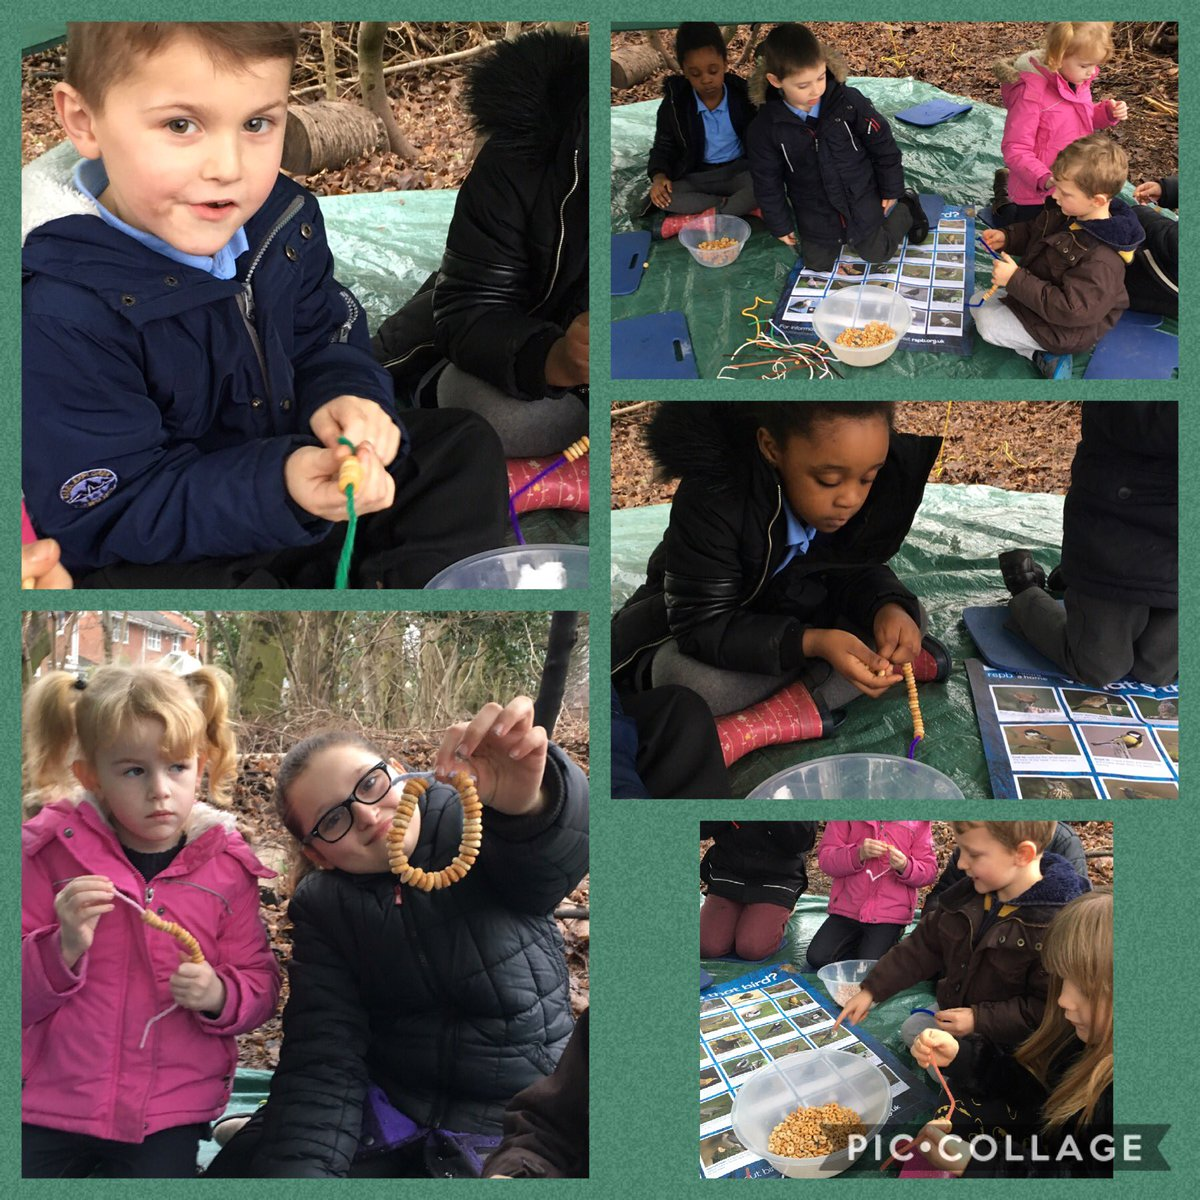 Taking part in @RSPB_Learning wild challenge. Making bird feeders to attract more wildlife to our site. #forestschool #rspb #birdfeeders<br>http://pic.twitter.com/RlLDef4DcY